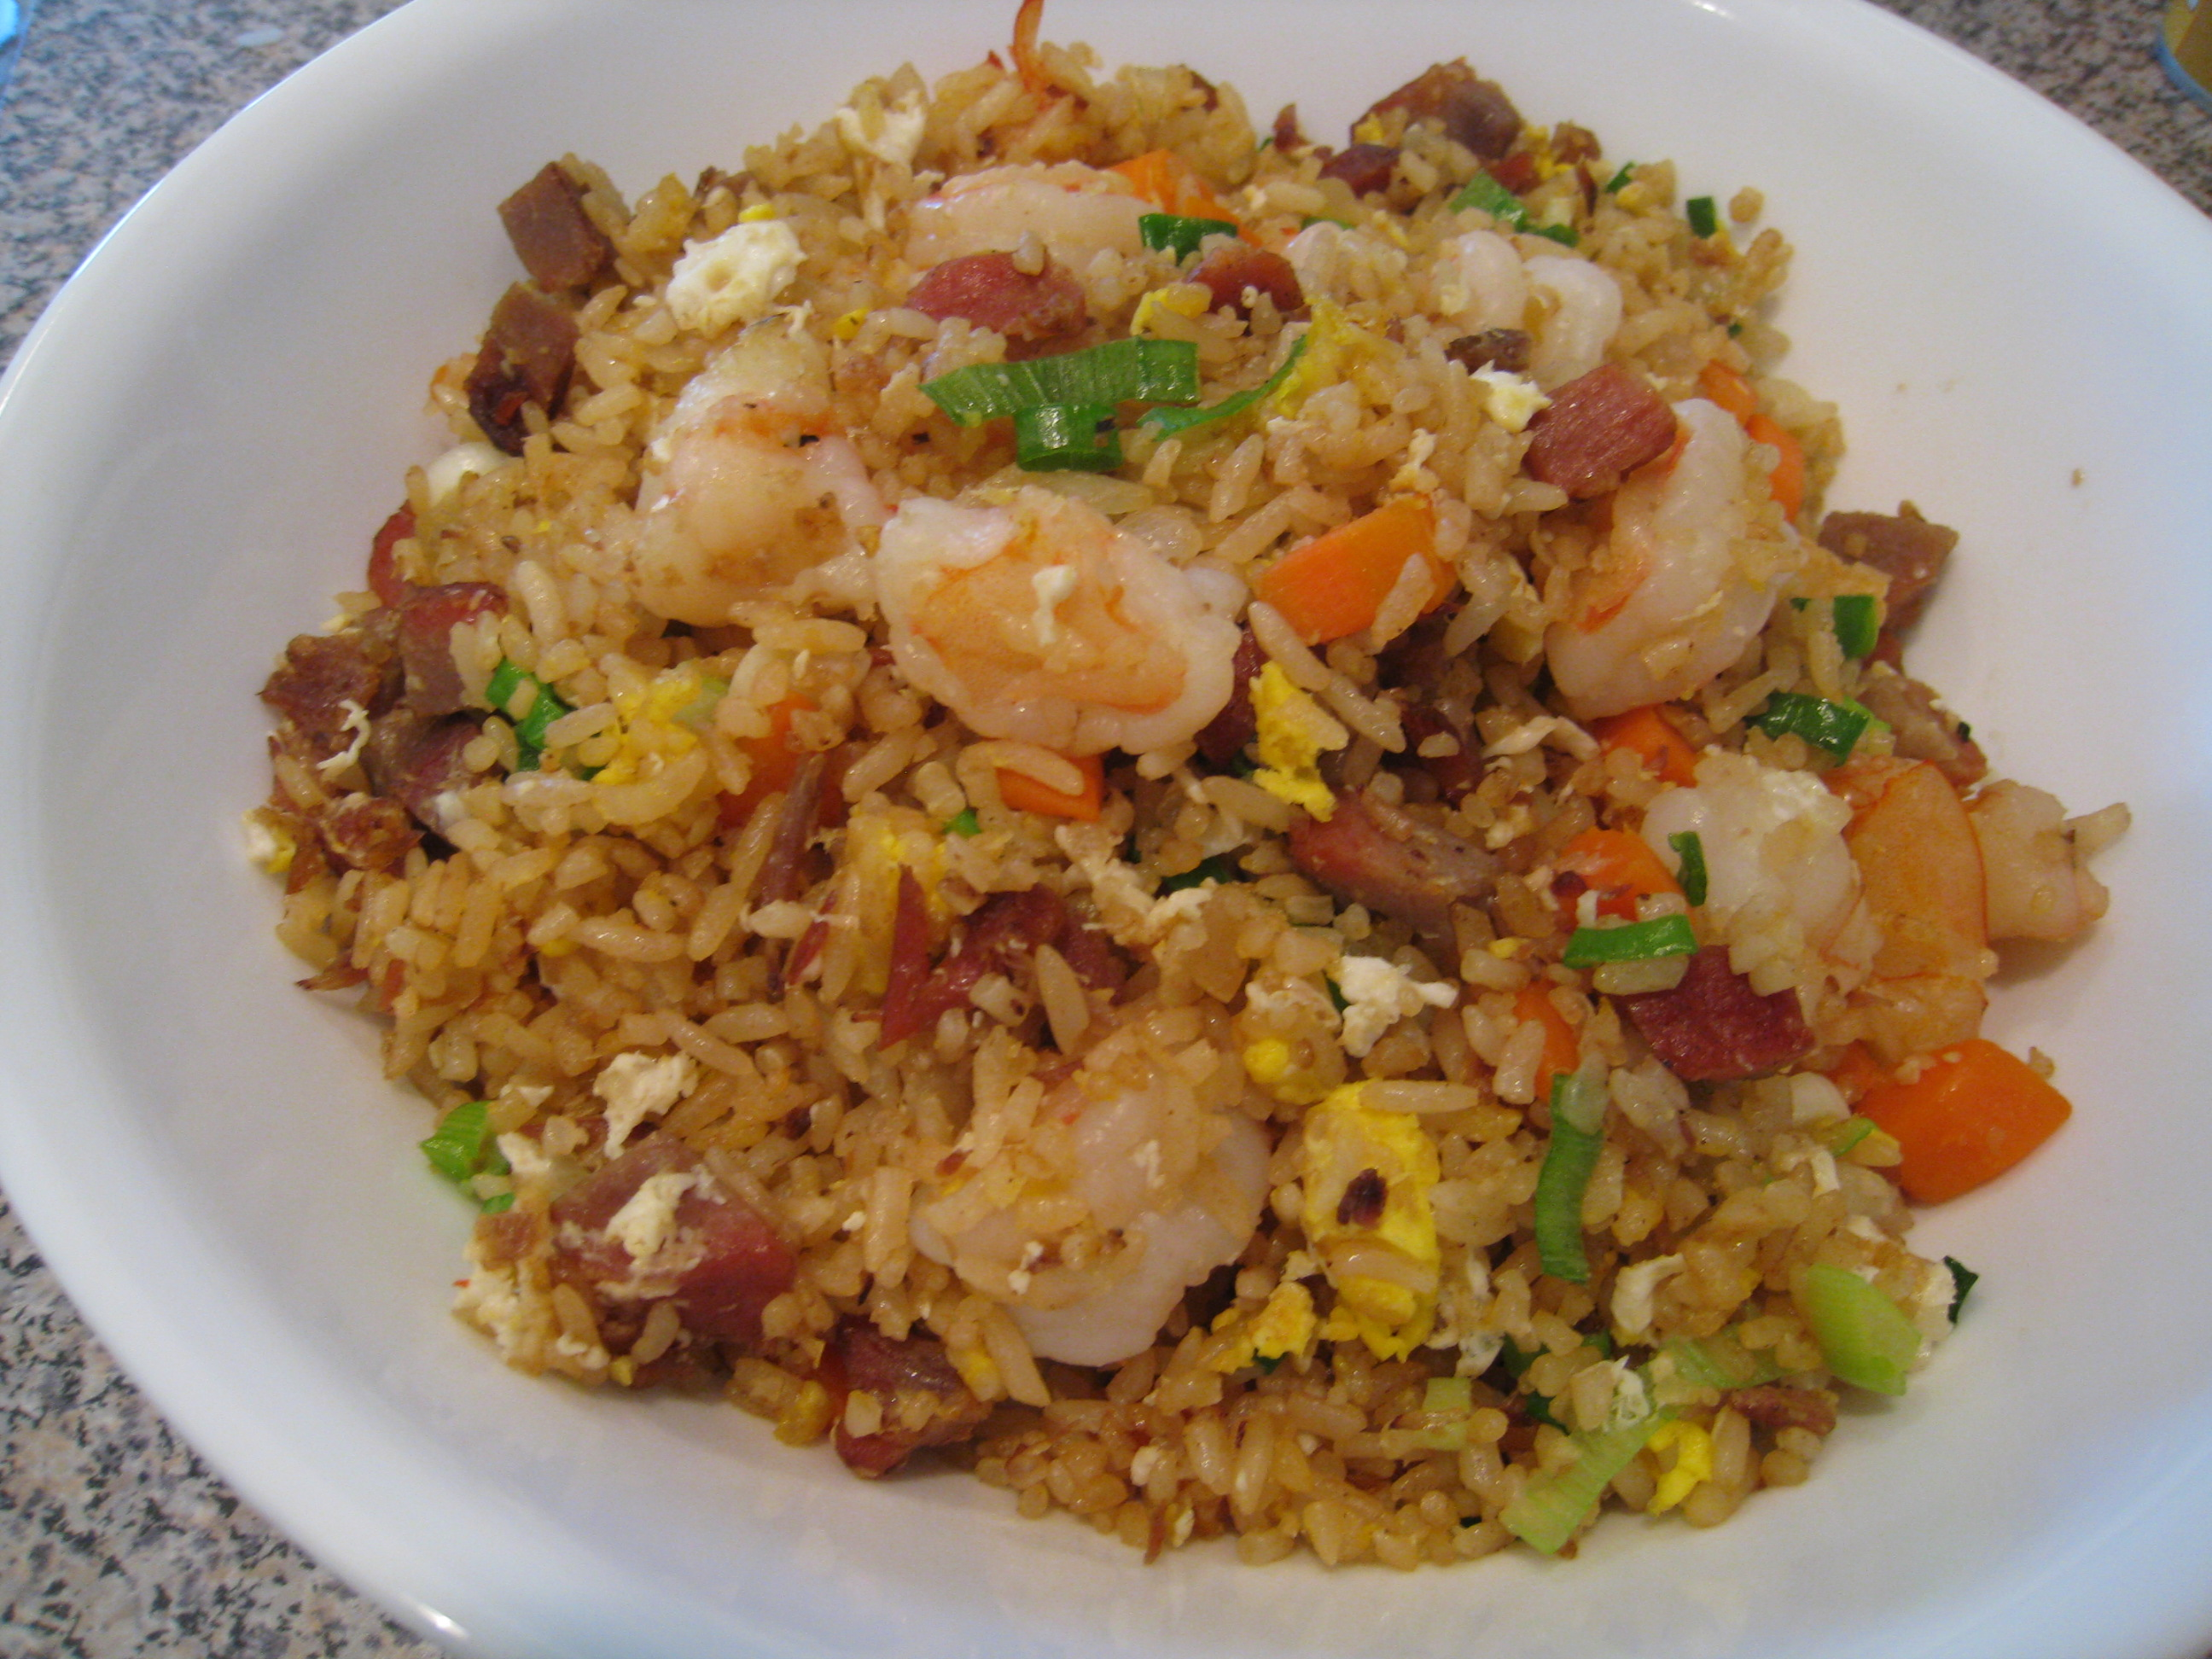 Yeung Chow Fried Rice (20 Mins) – the yummiest fried rice IMHO